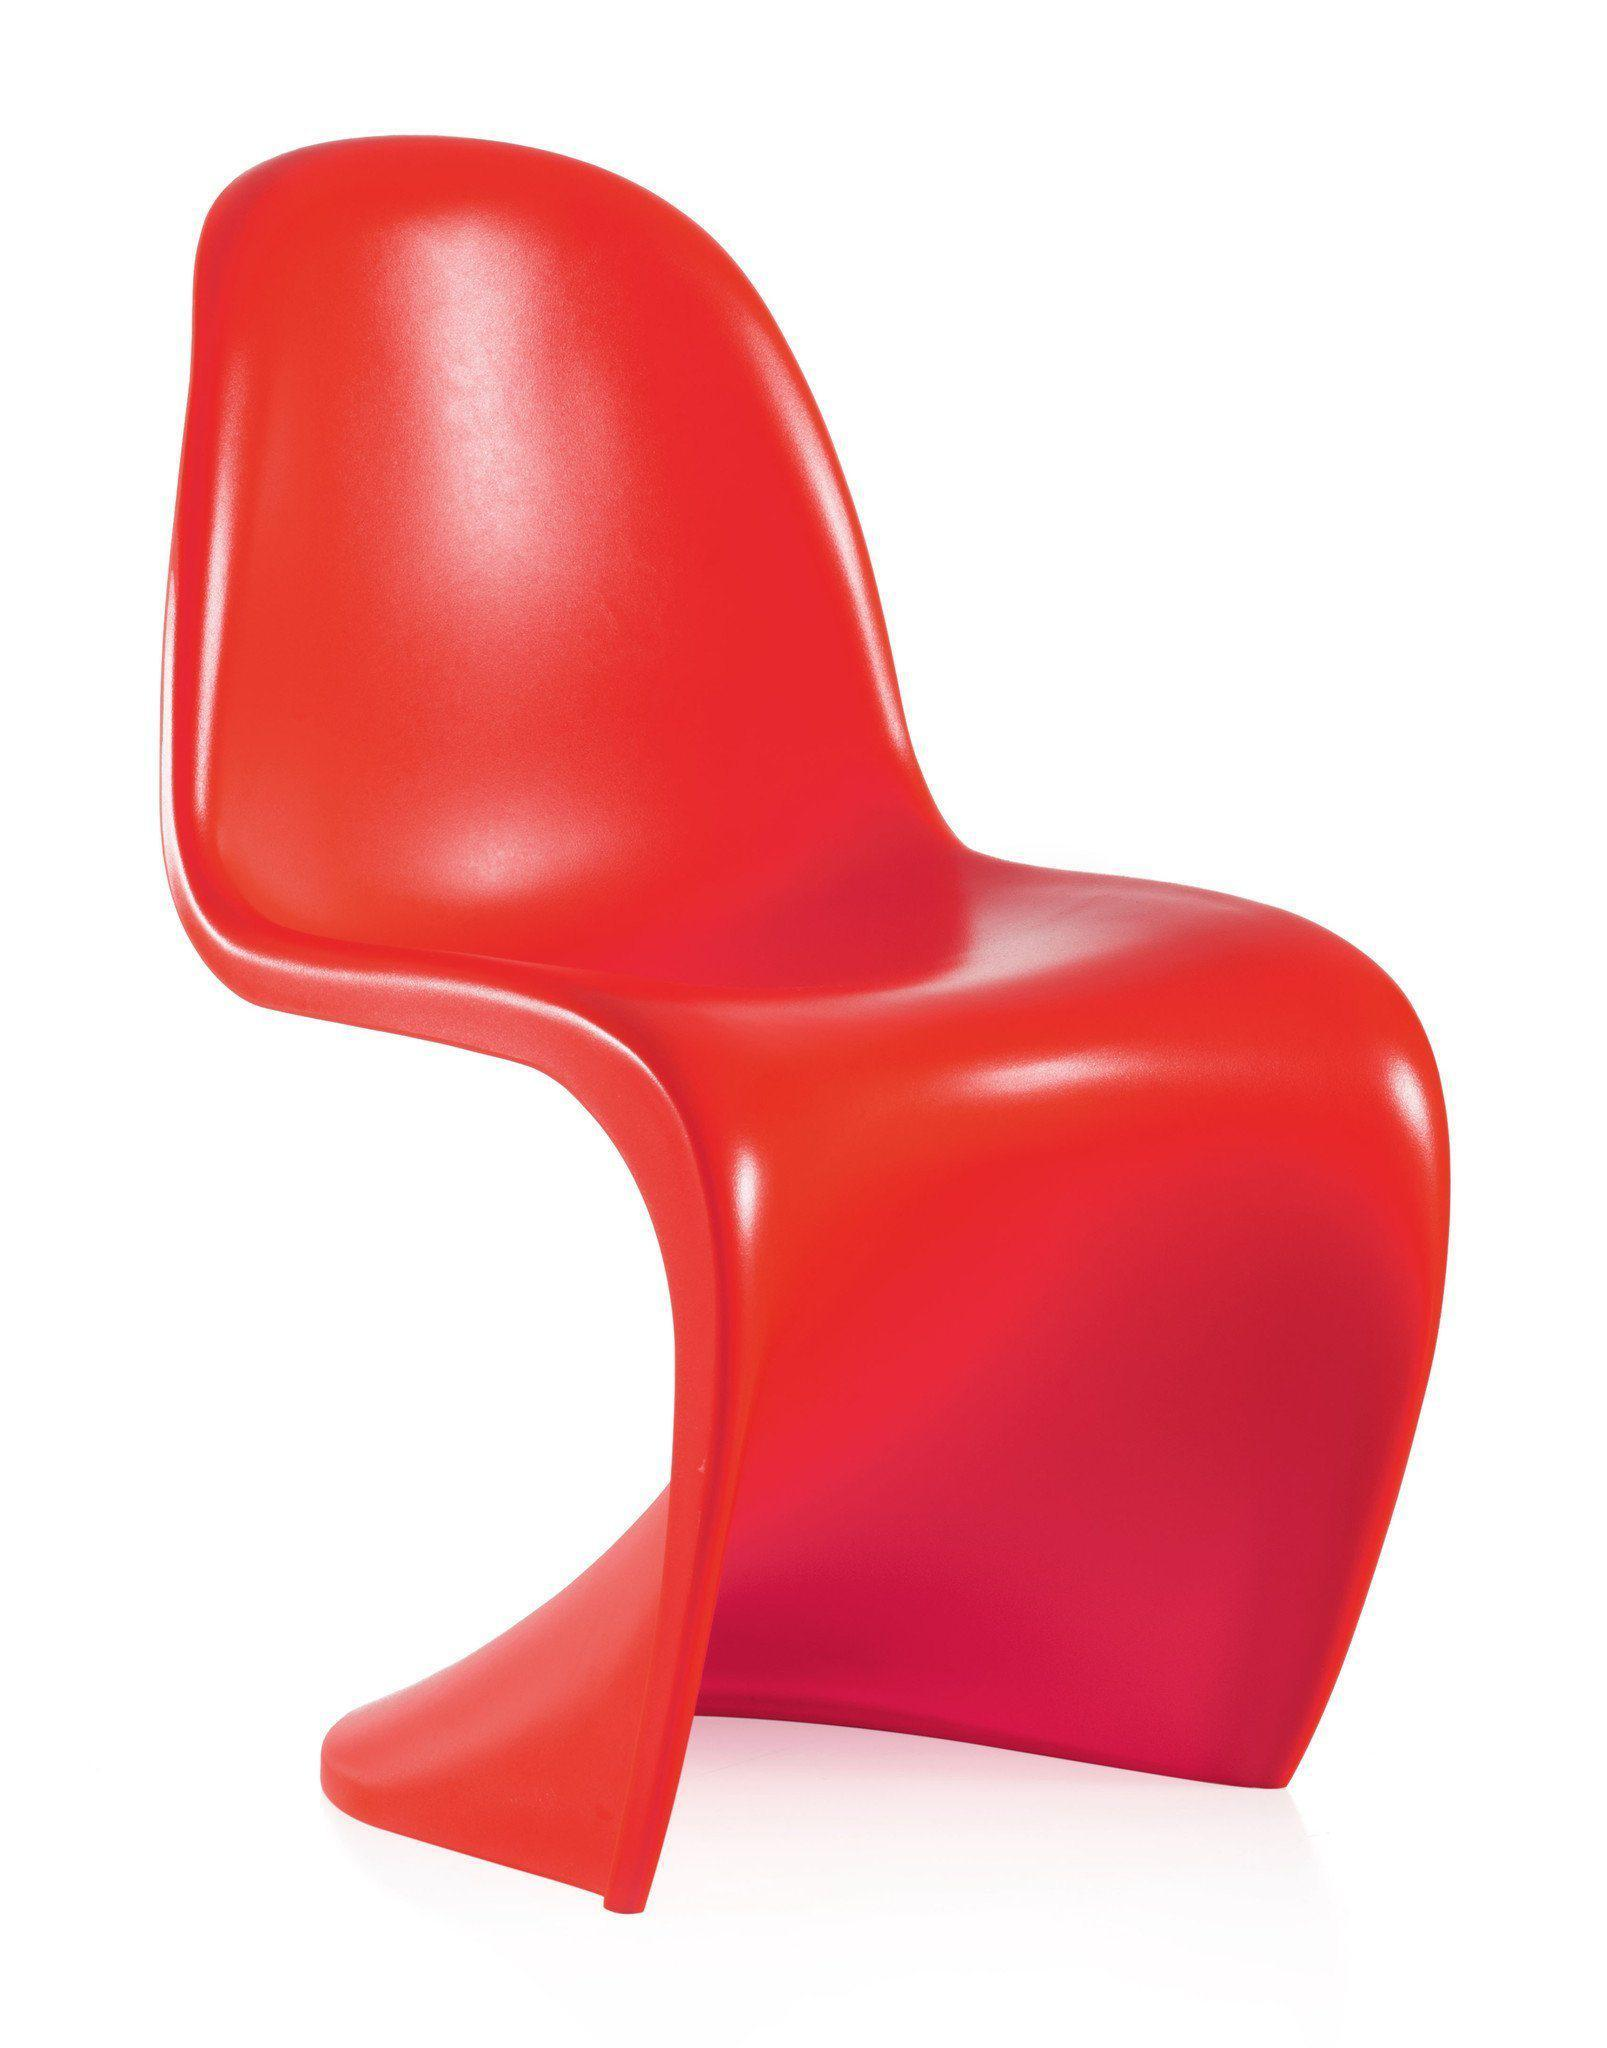 Elegant Verner Panton Chair Replica